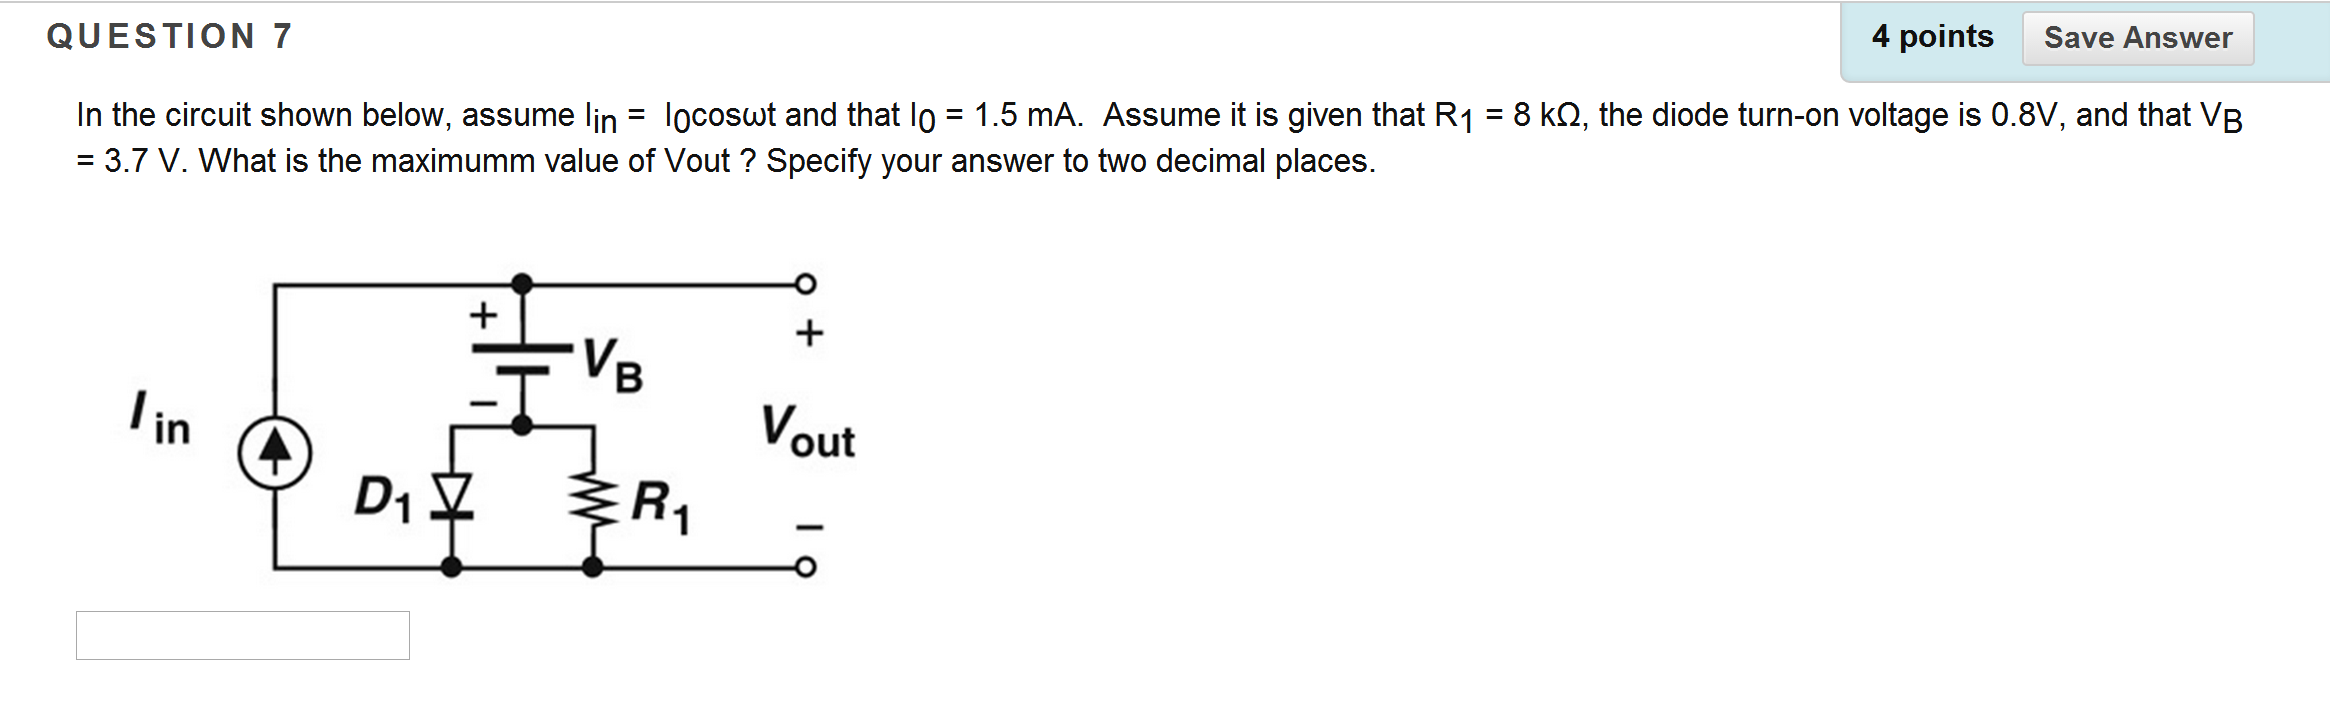 Solved This Week We Look At Designing A Full Wave Bridge Fullwave Rectifier Circuit Question 7 4 Pointssave Answer In The Shown Below Assume Lin Locoswt And